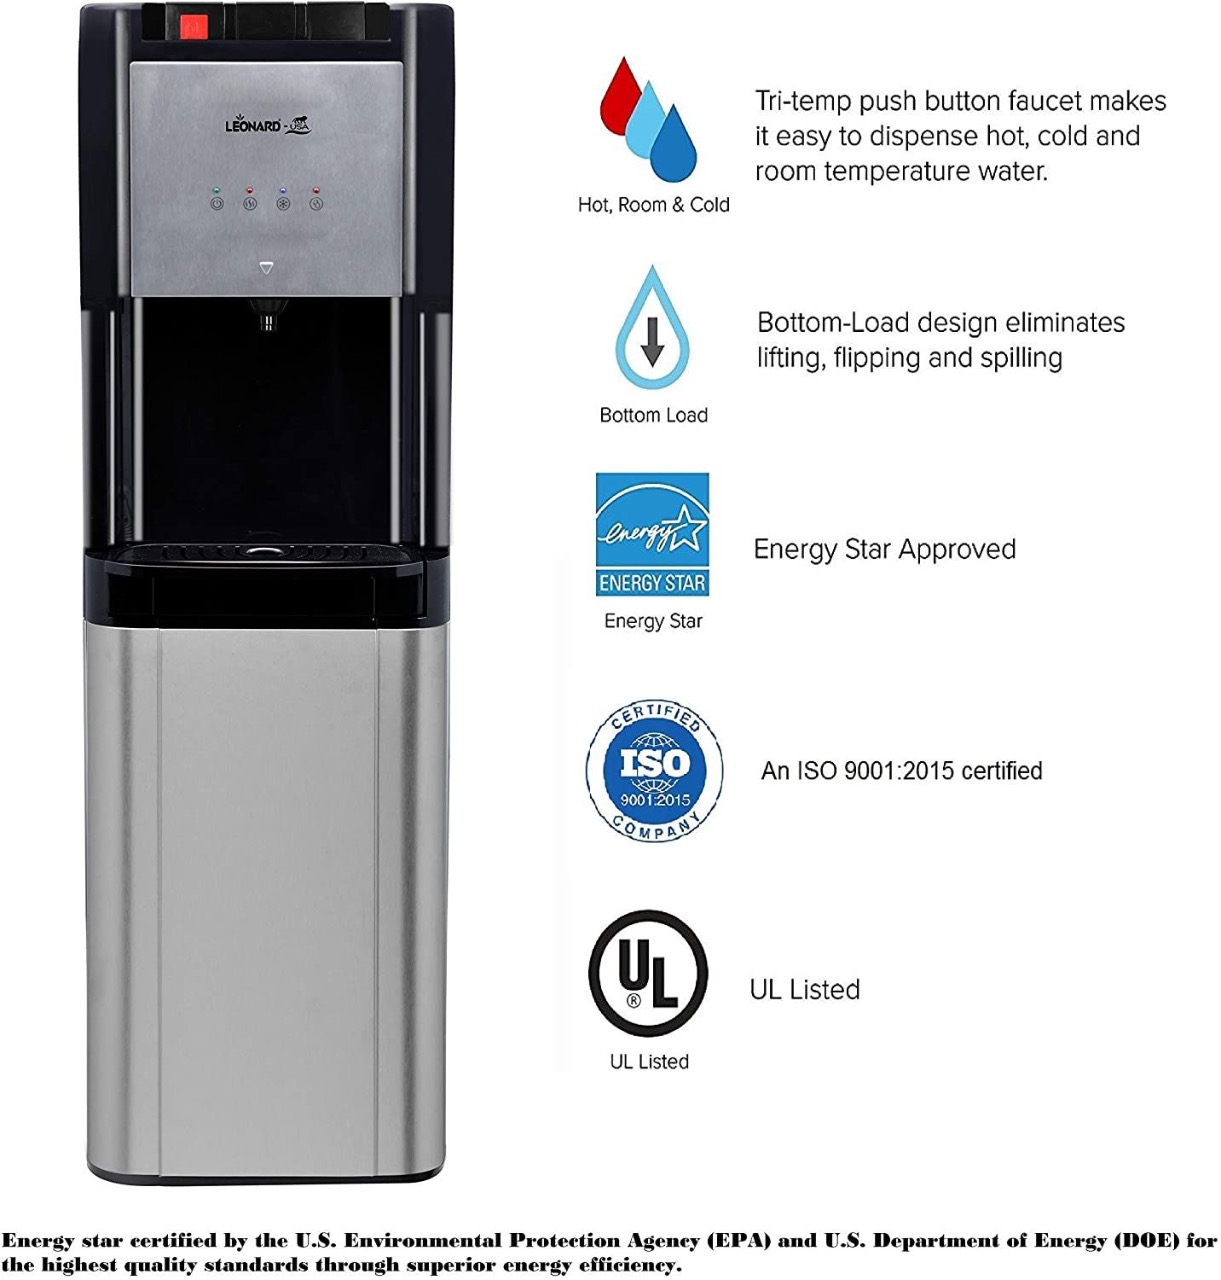 LEONARD USA Inverter Bottom Loading Stainless Steel Water Dispenser with Automatic Cut Off System & Safety Switch, Based on American Technology